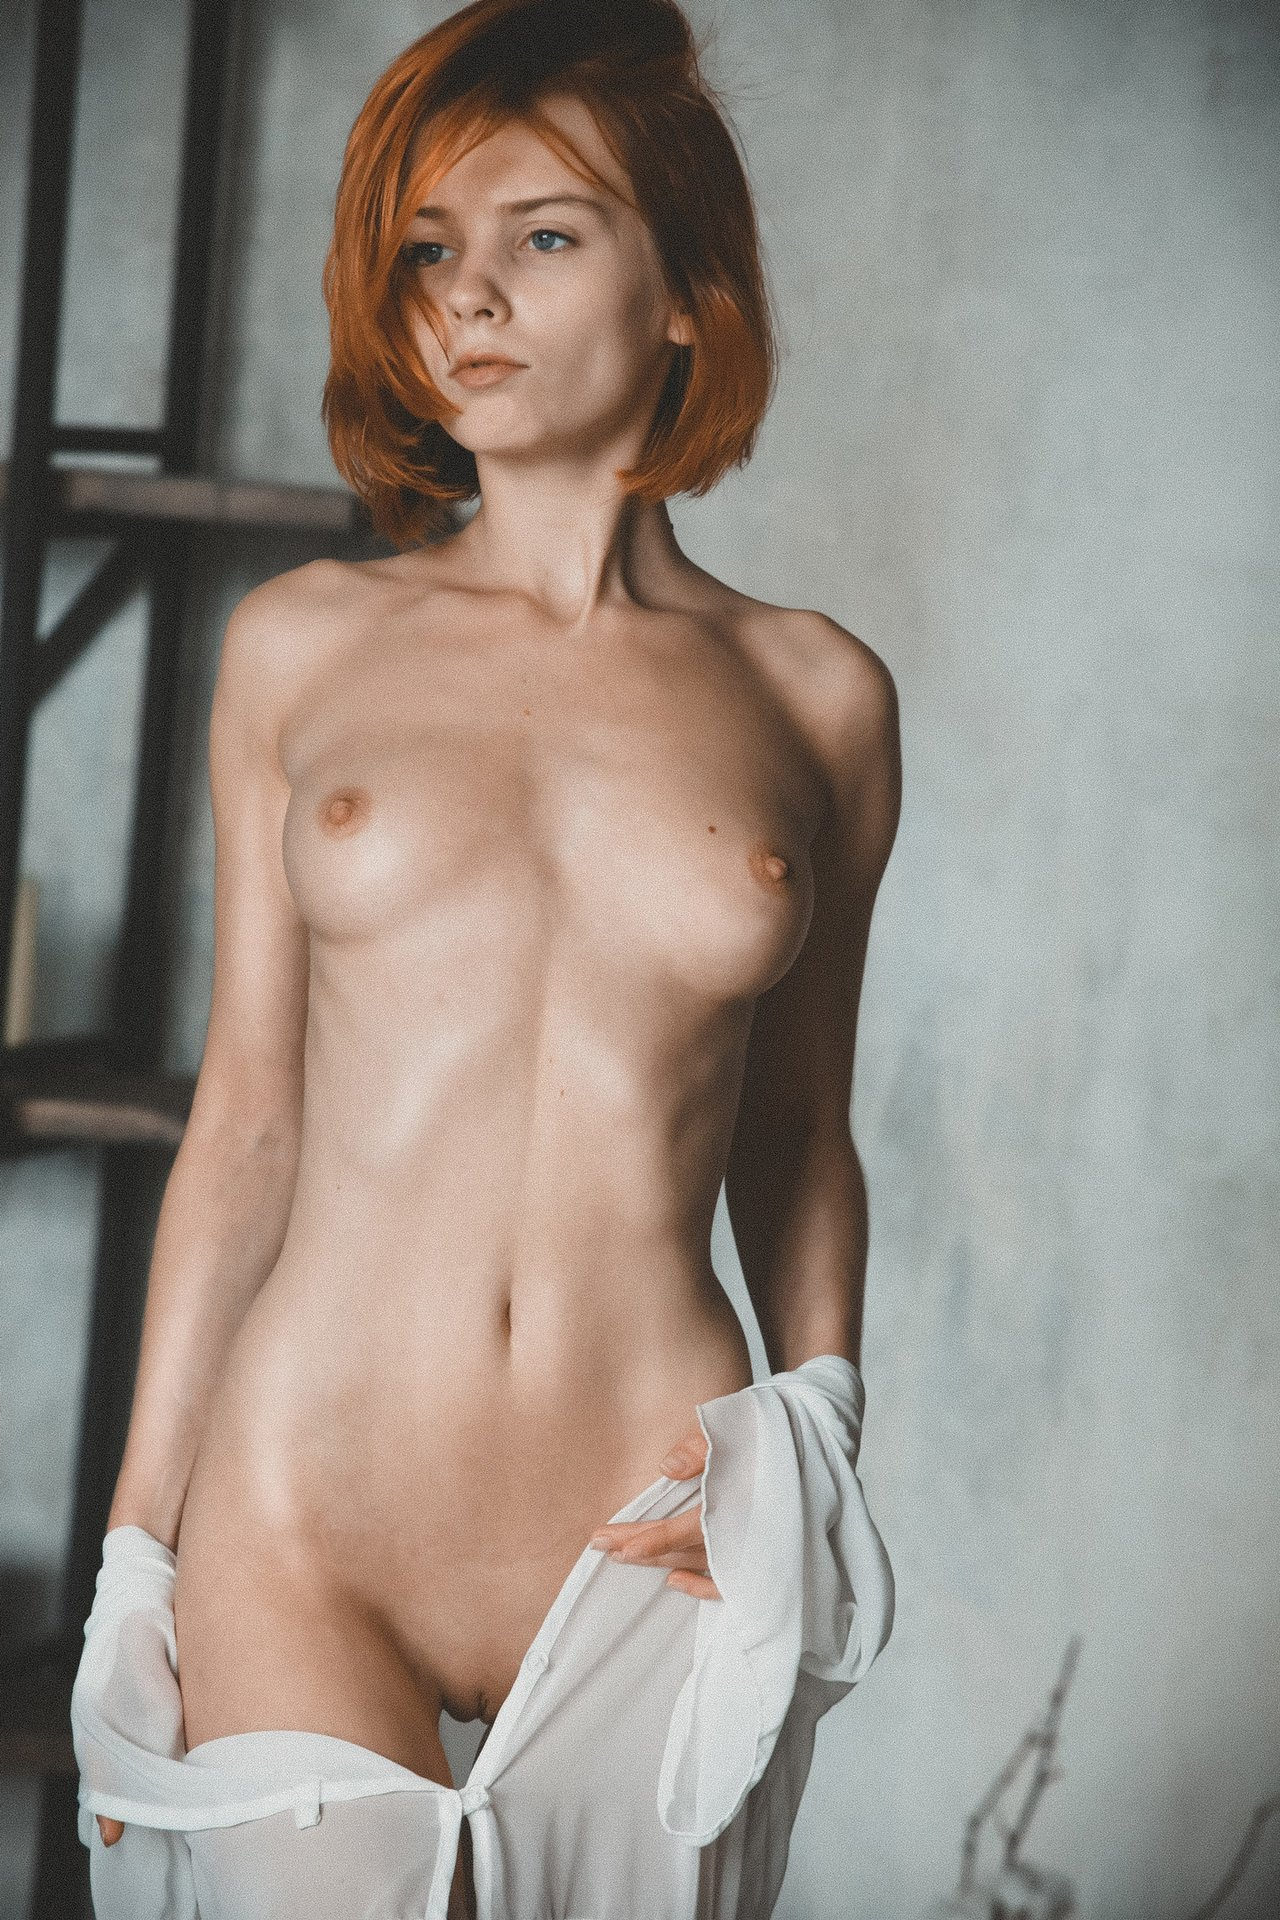 Nude Photos Of Female Actresses